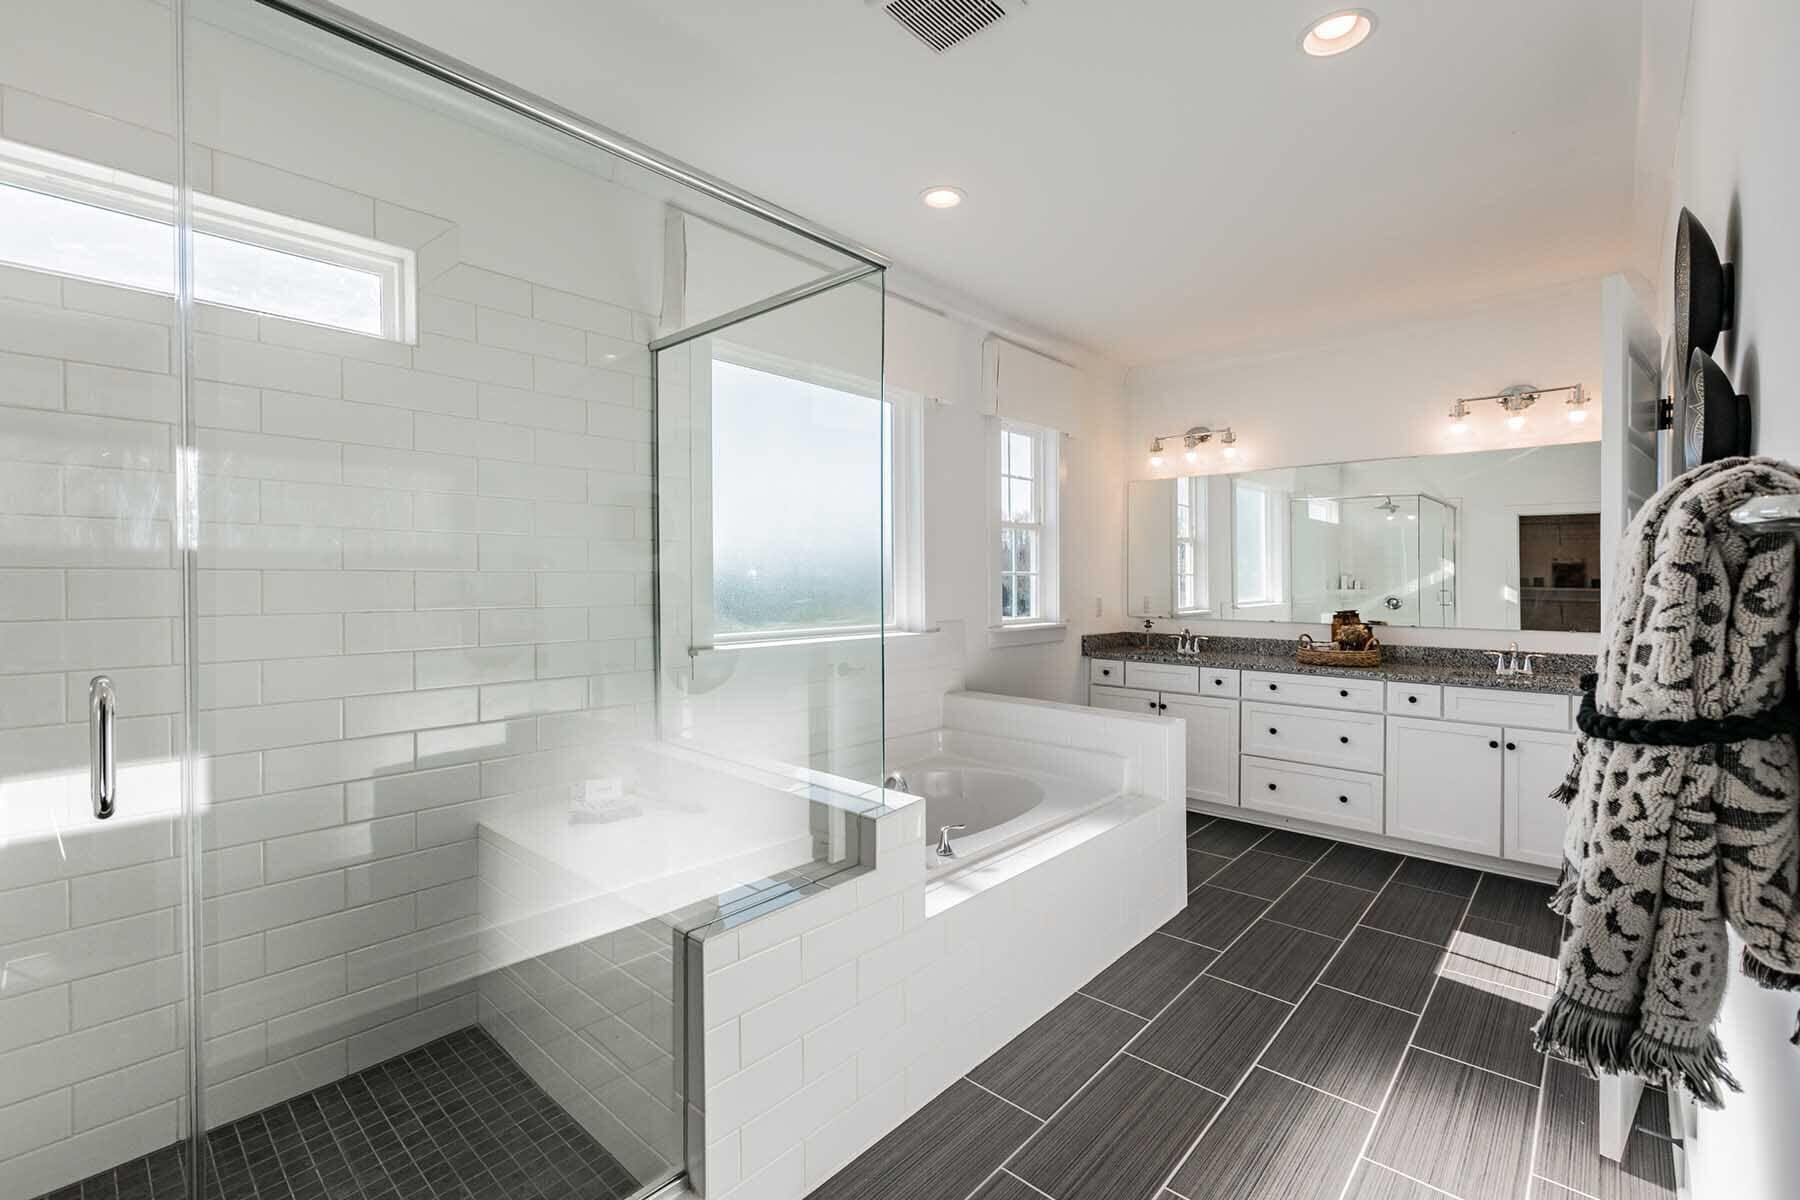 Bathroom featured in the Torrance II By M/I Homes in Charlotte, NC